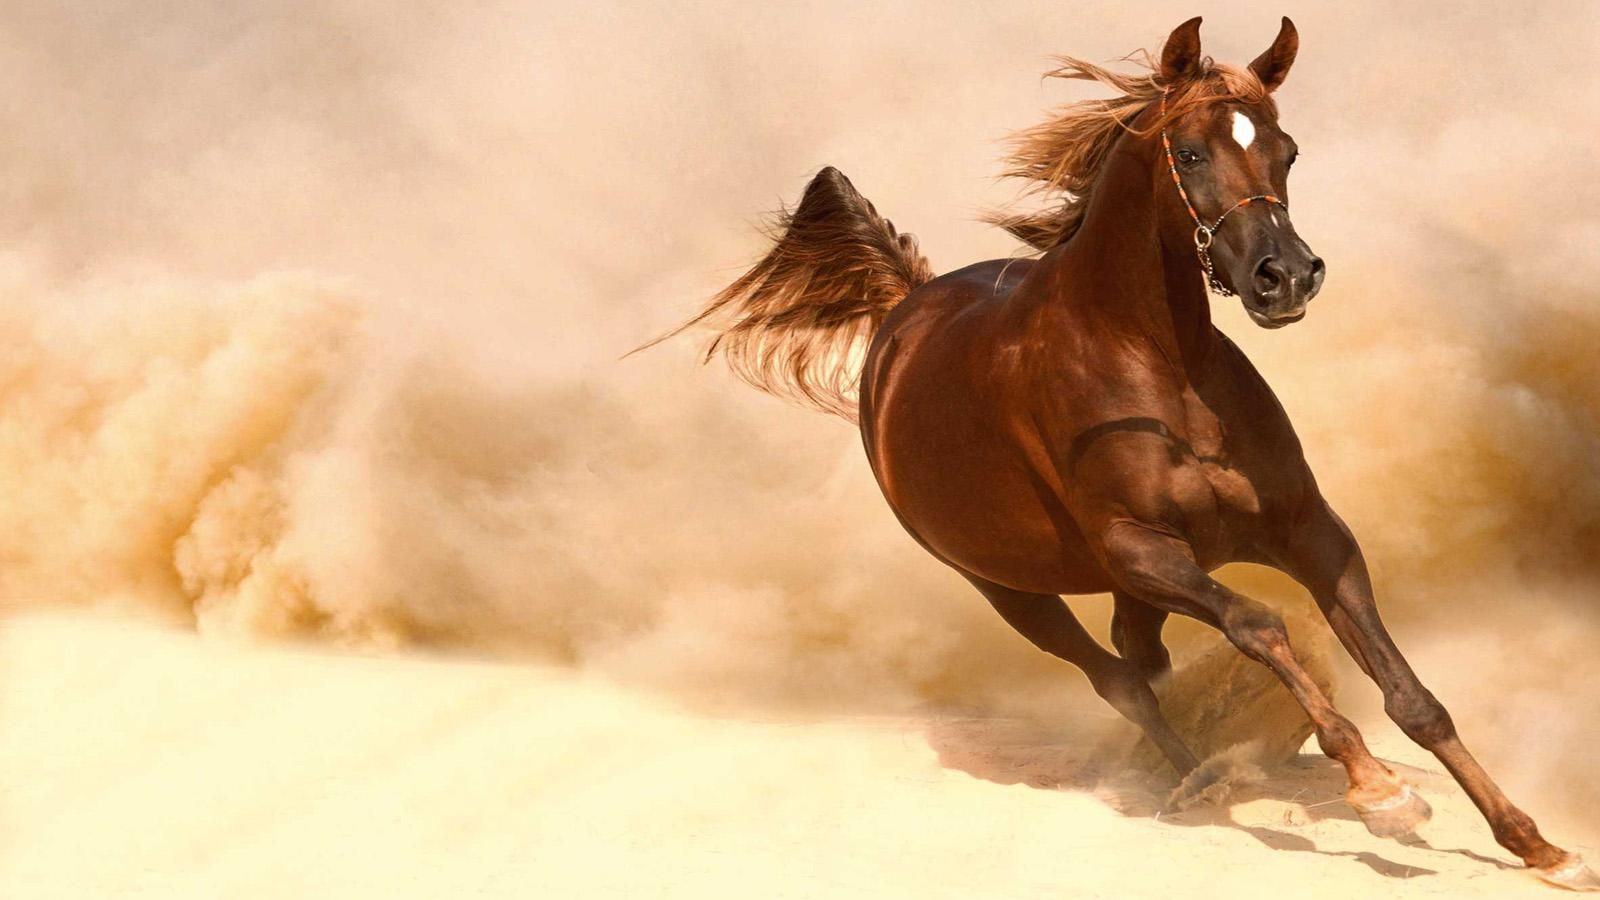 Download Wallpaper Horse Desert - 8dd6d4bcb7748733c9a70a222b109049  Graphic_494645.jpg